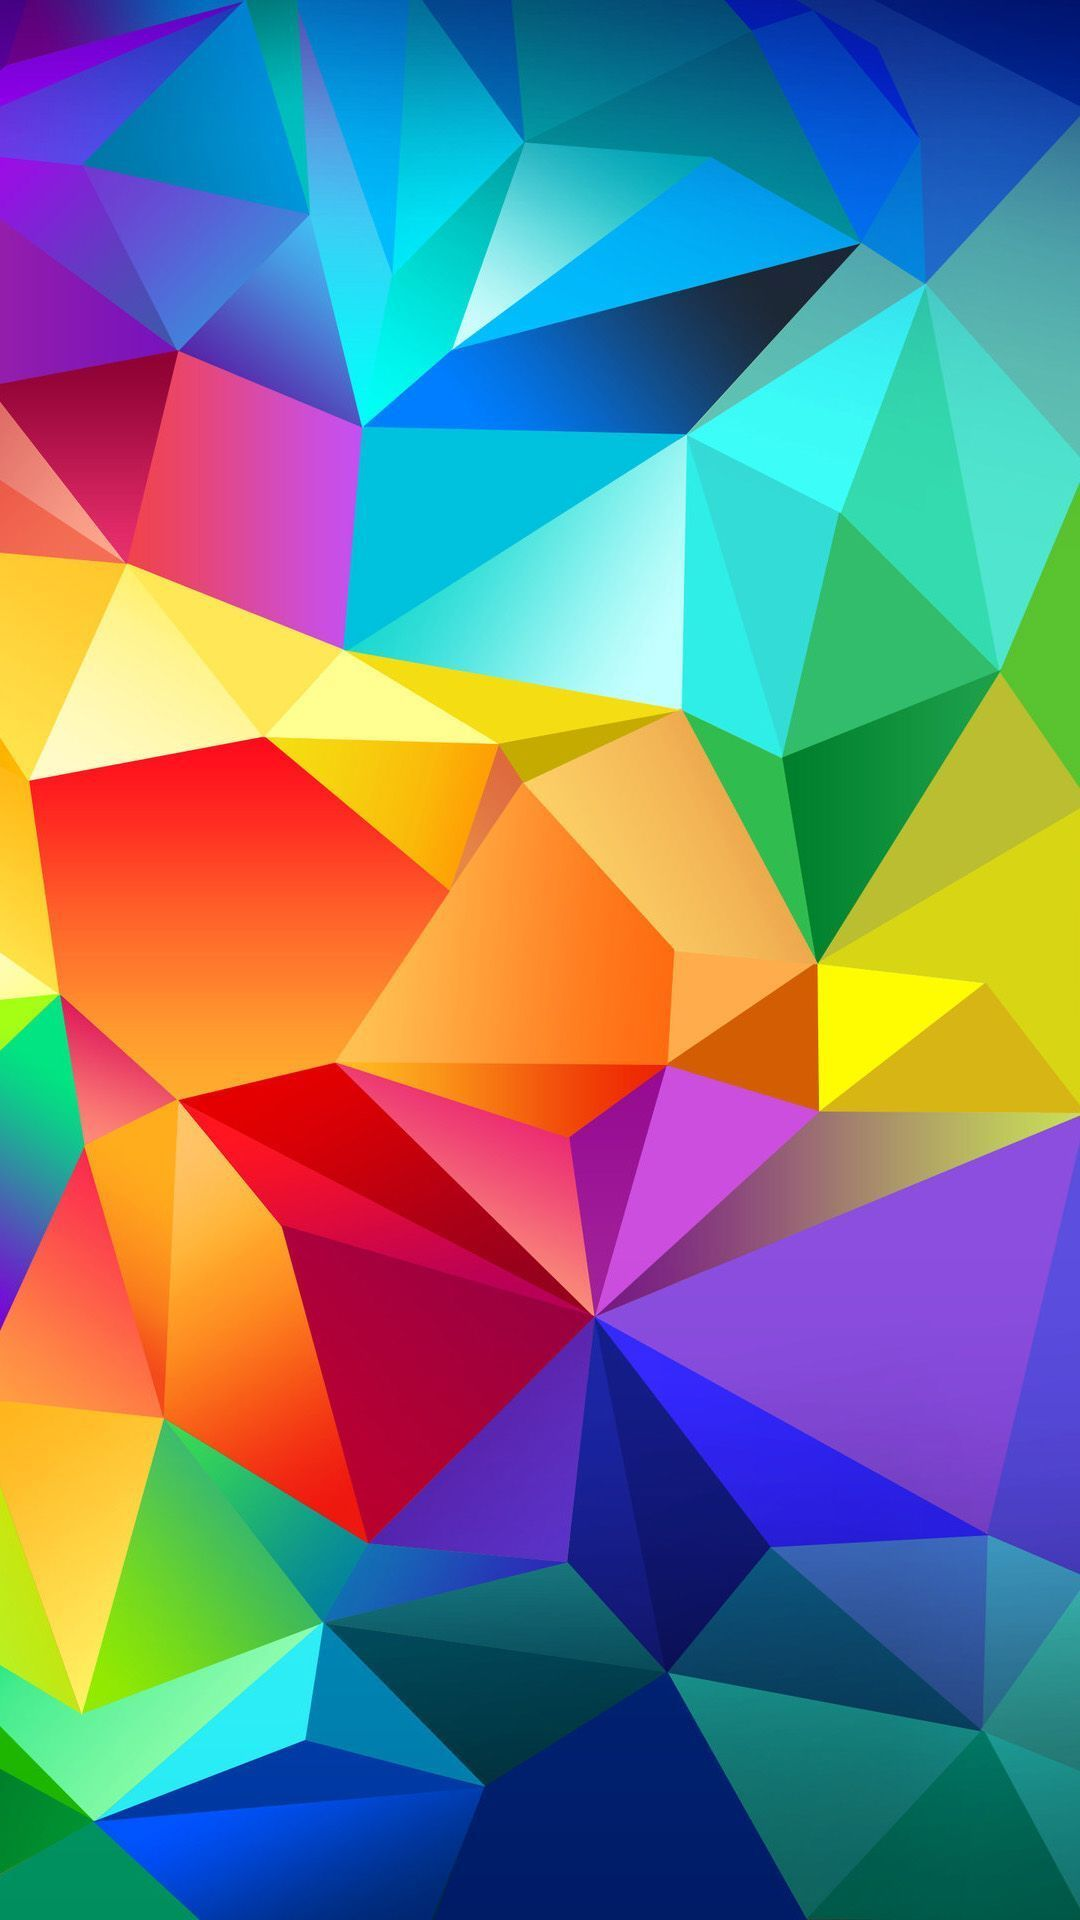 45 Colorful Abstract Hd Wallpapers Desktop Background Android Iphone 1080p 4k 1080x1920 2021